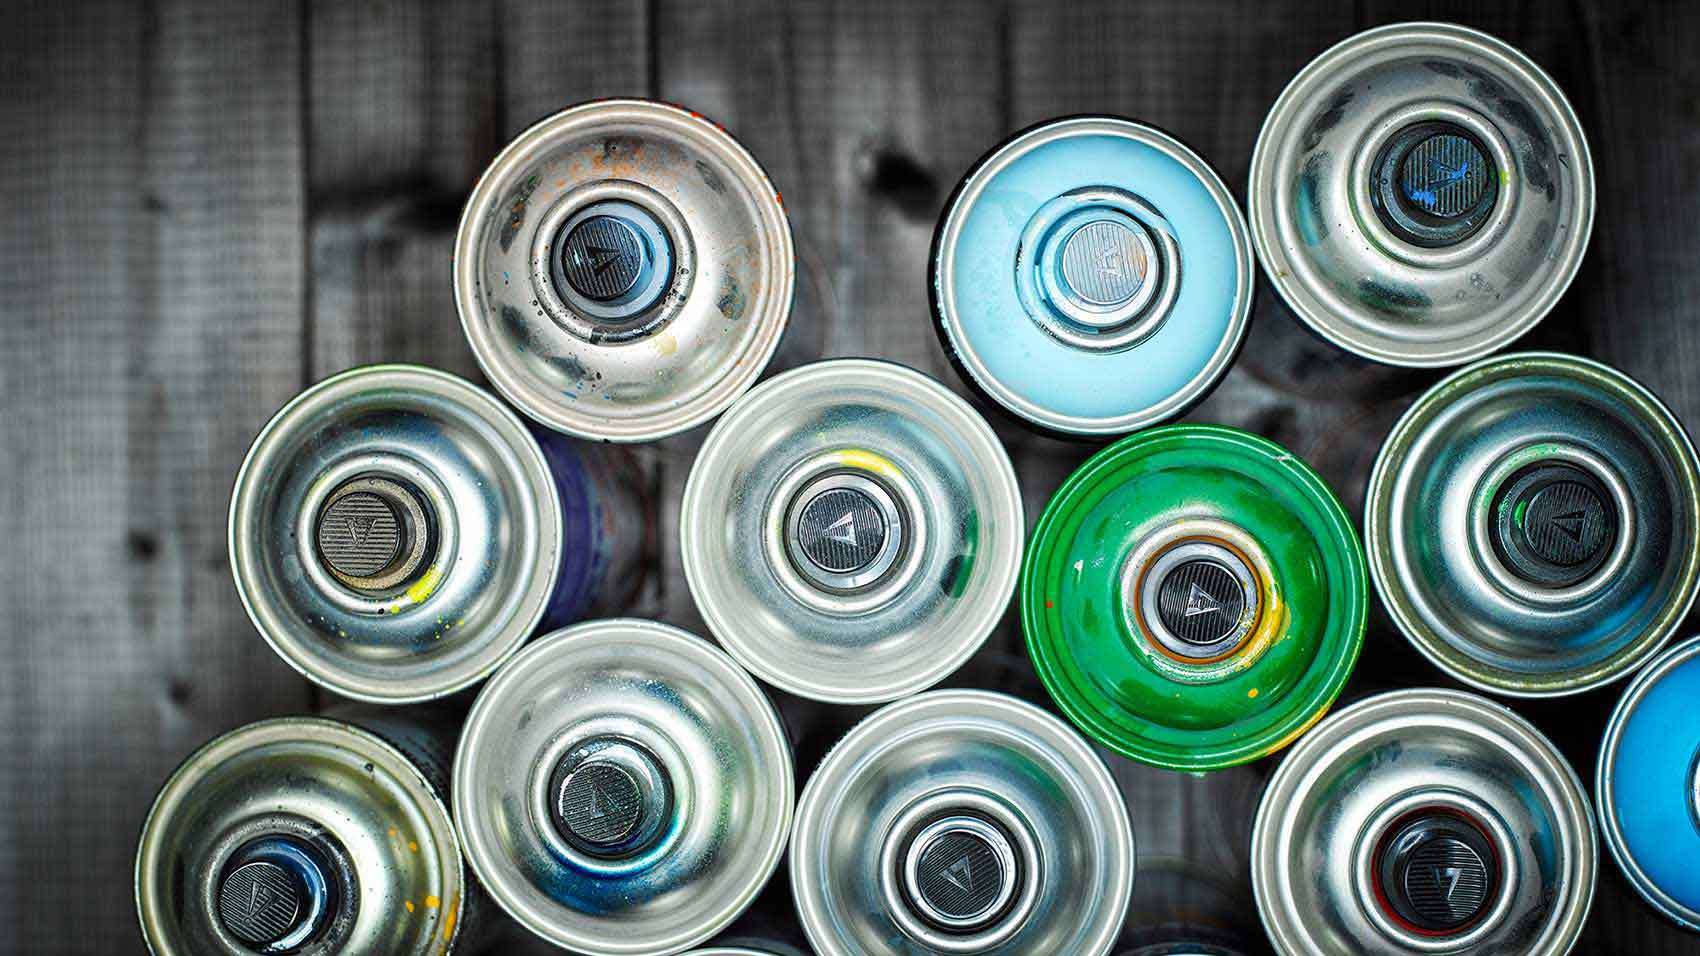 SC Johnson's product recycling programme helped waste workers sort recycling and separate aerosol cans from other materials.